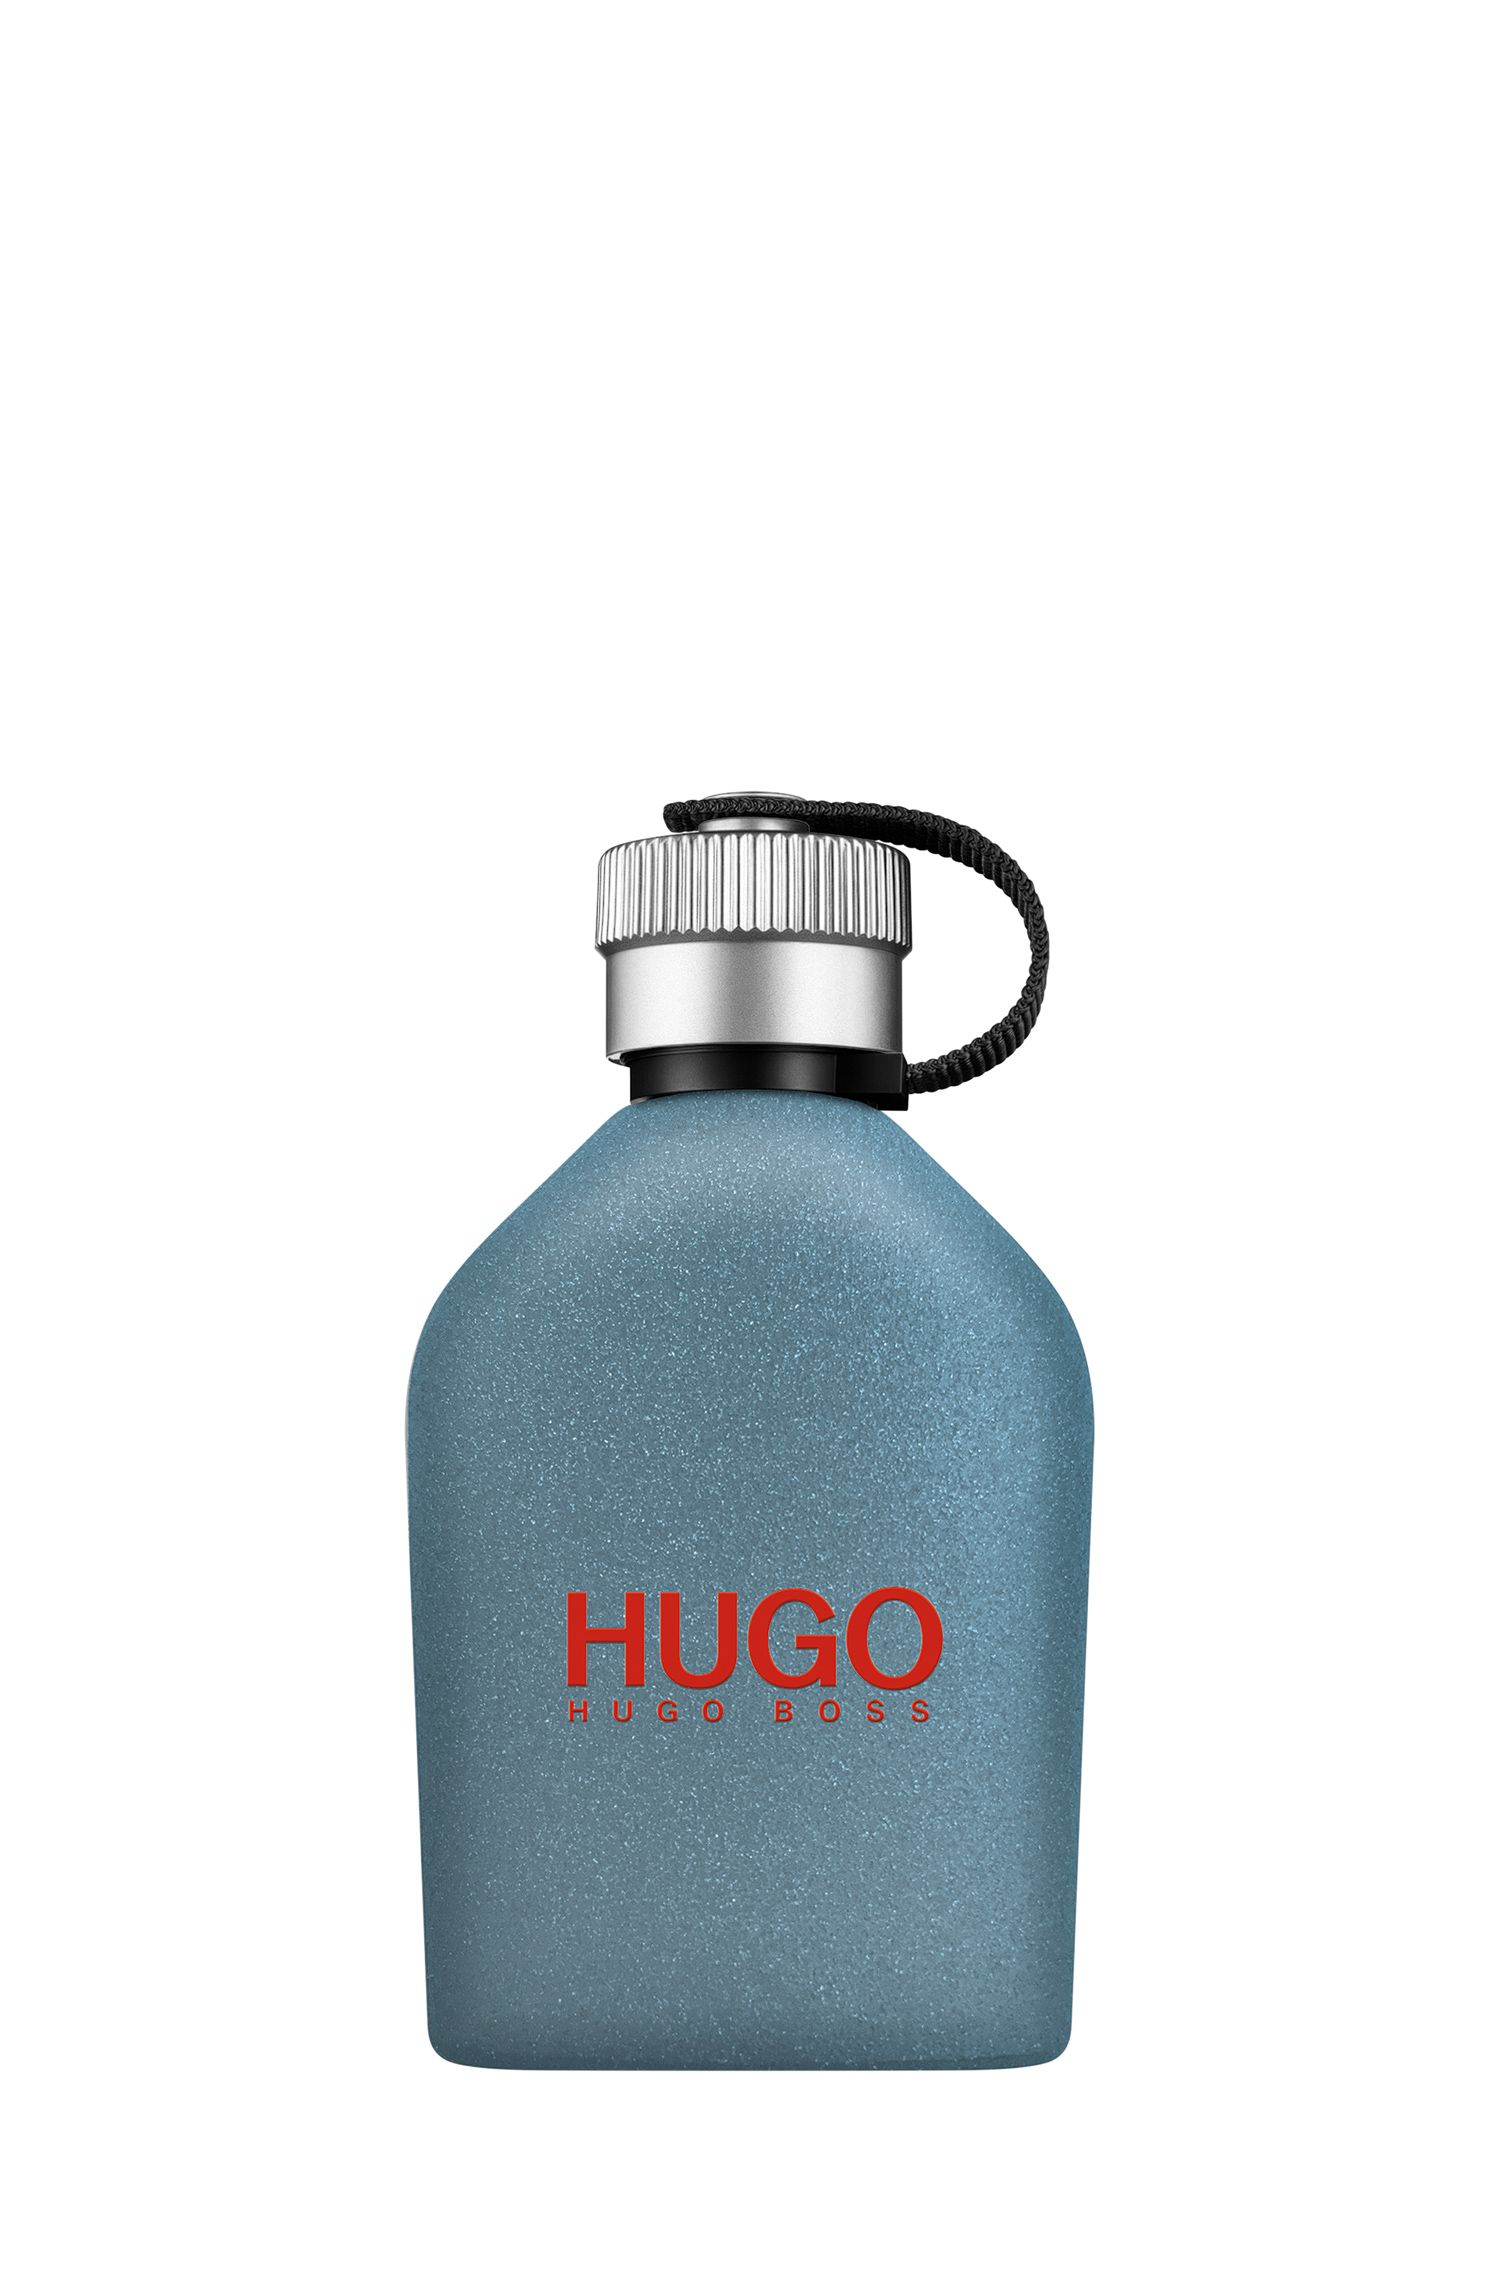 Eau de toilette HUGO Urban Journey de 125 ml